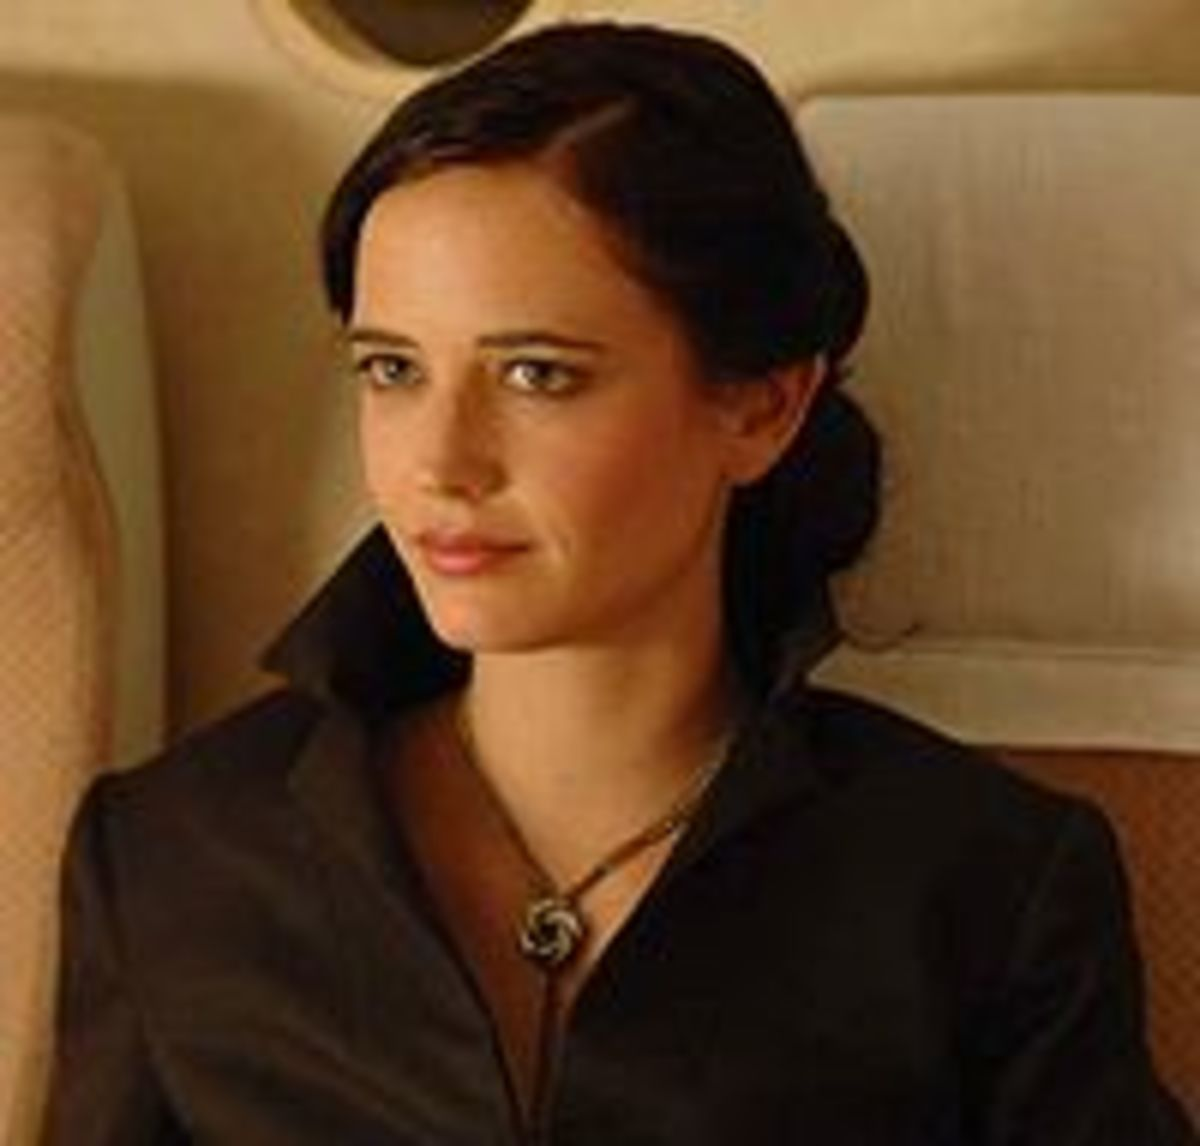 Eva Green as Vesper Lynd